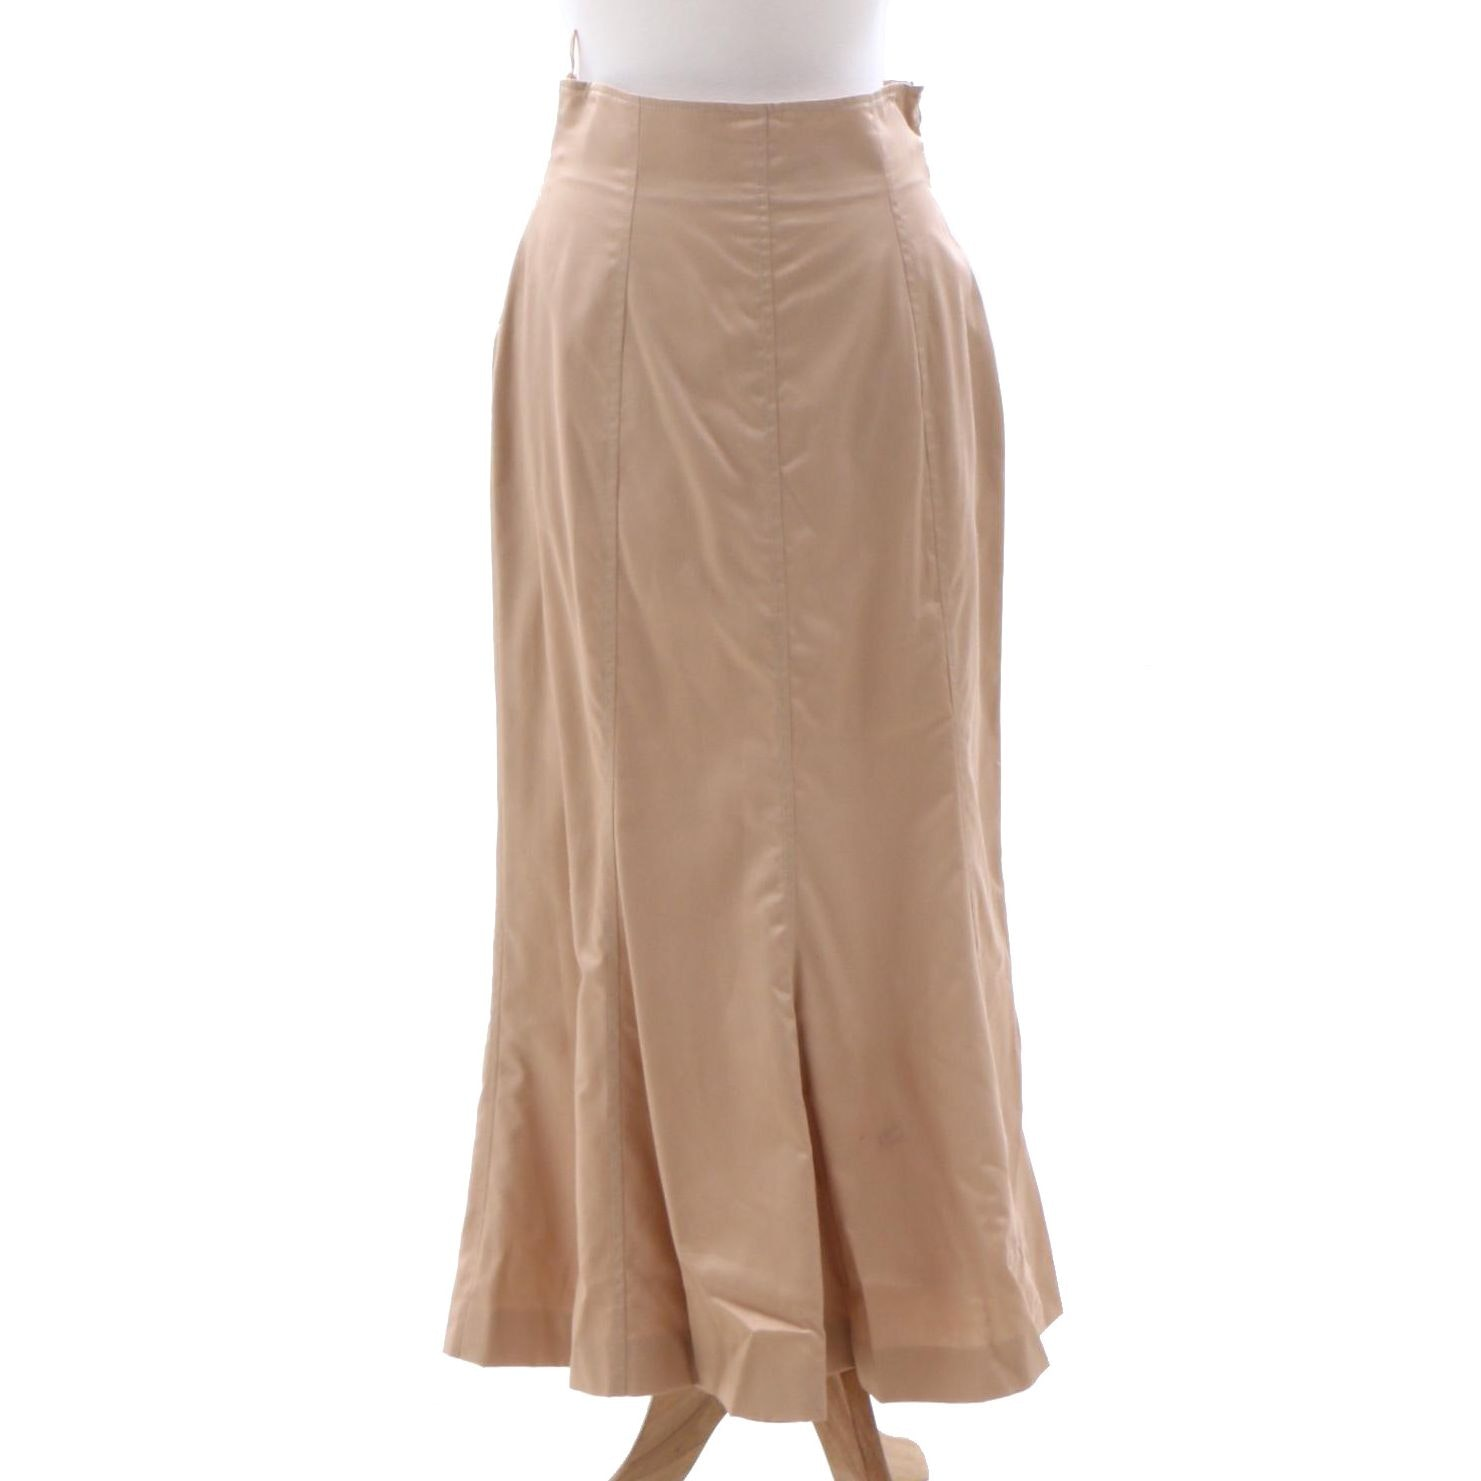 Christian Dior Boutique Paris Cotton and Leather Trumpet Style Skirt